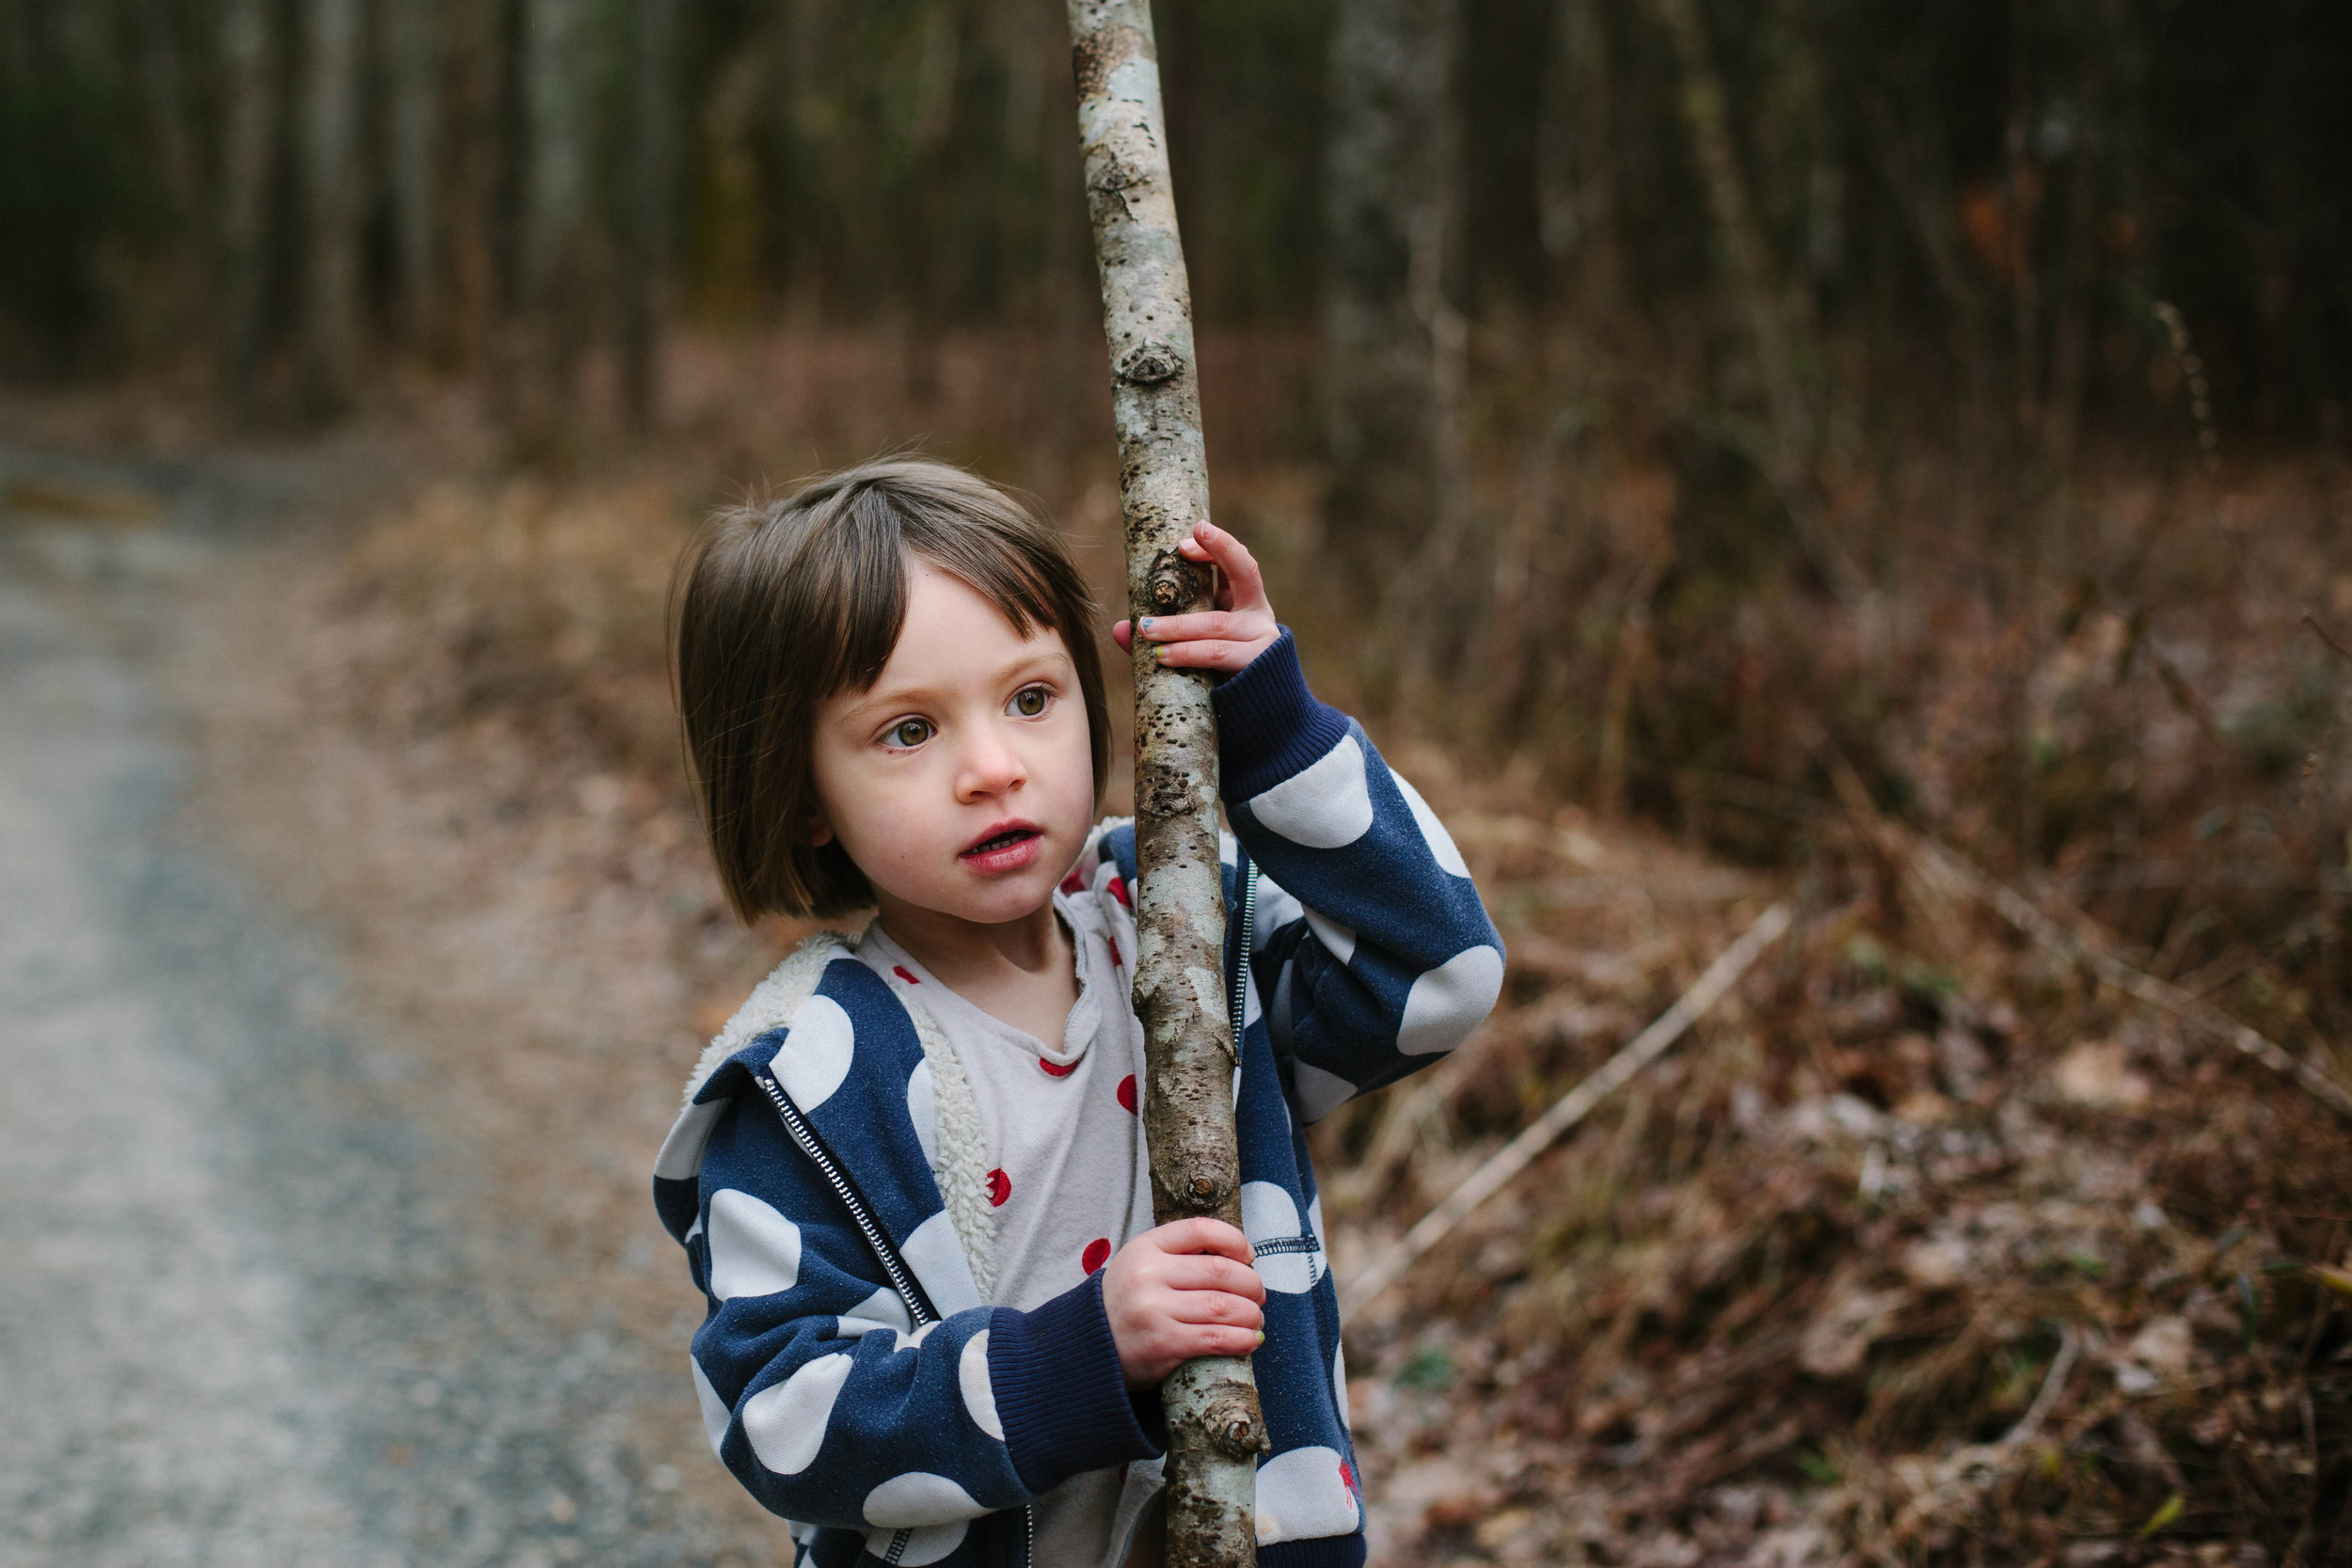 Image of girl with large stick on gravel road in the forest